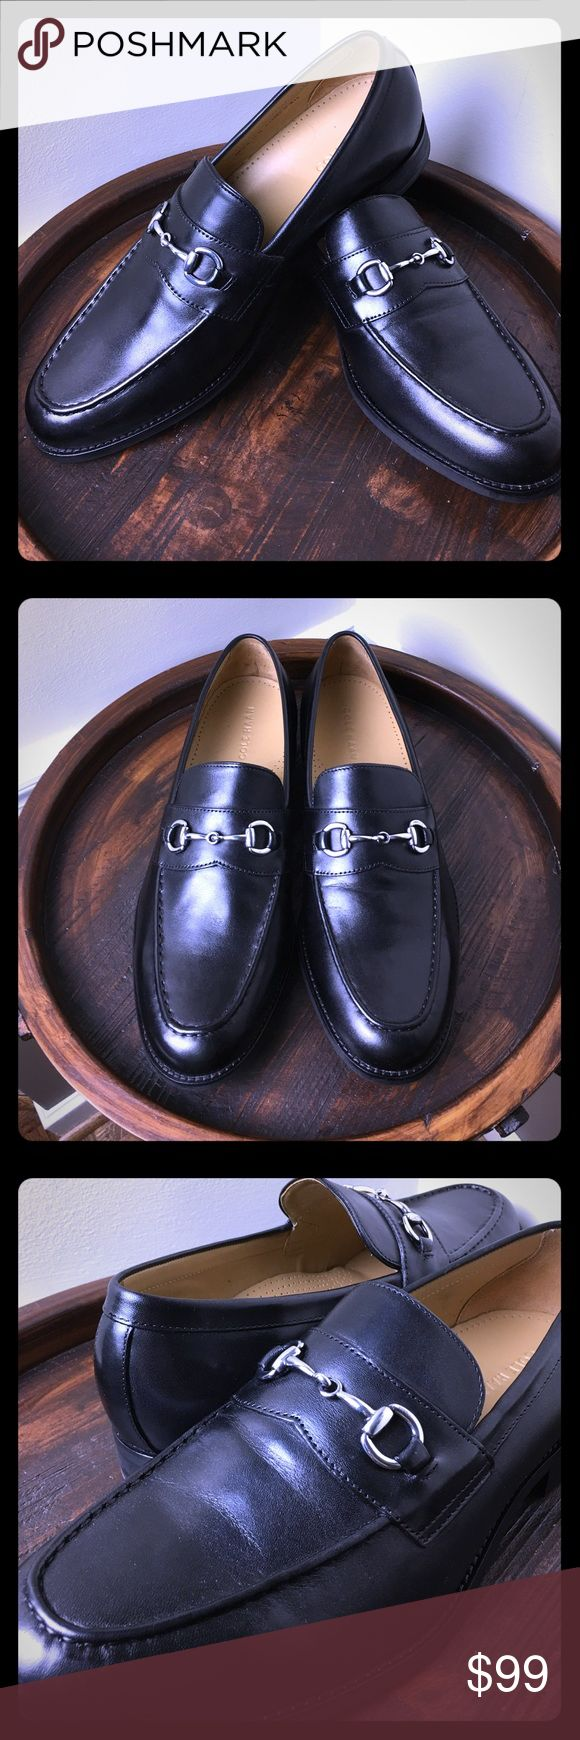 Cole Haan Maxwell Penny Bit Loafers 👞 !!!-BRAND NEW ~ NEVER WORN-!!! Size 12 M - Cole Haan...enough said! Cole Haan Shoes Loafers & Slip-Ons